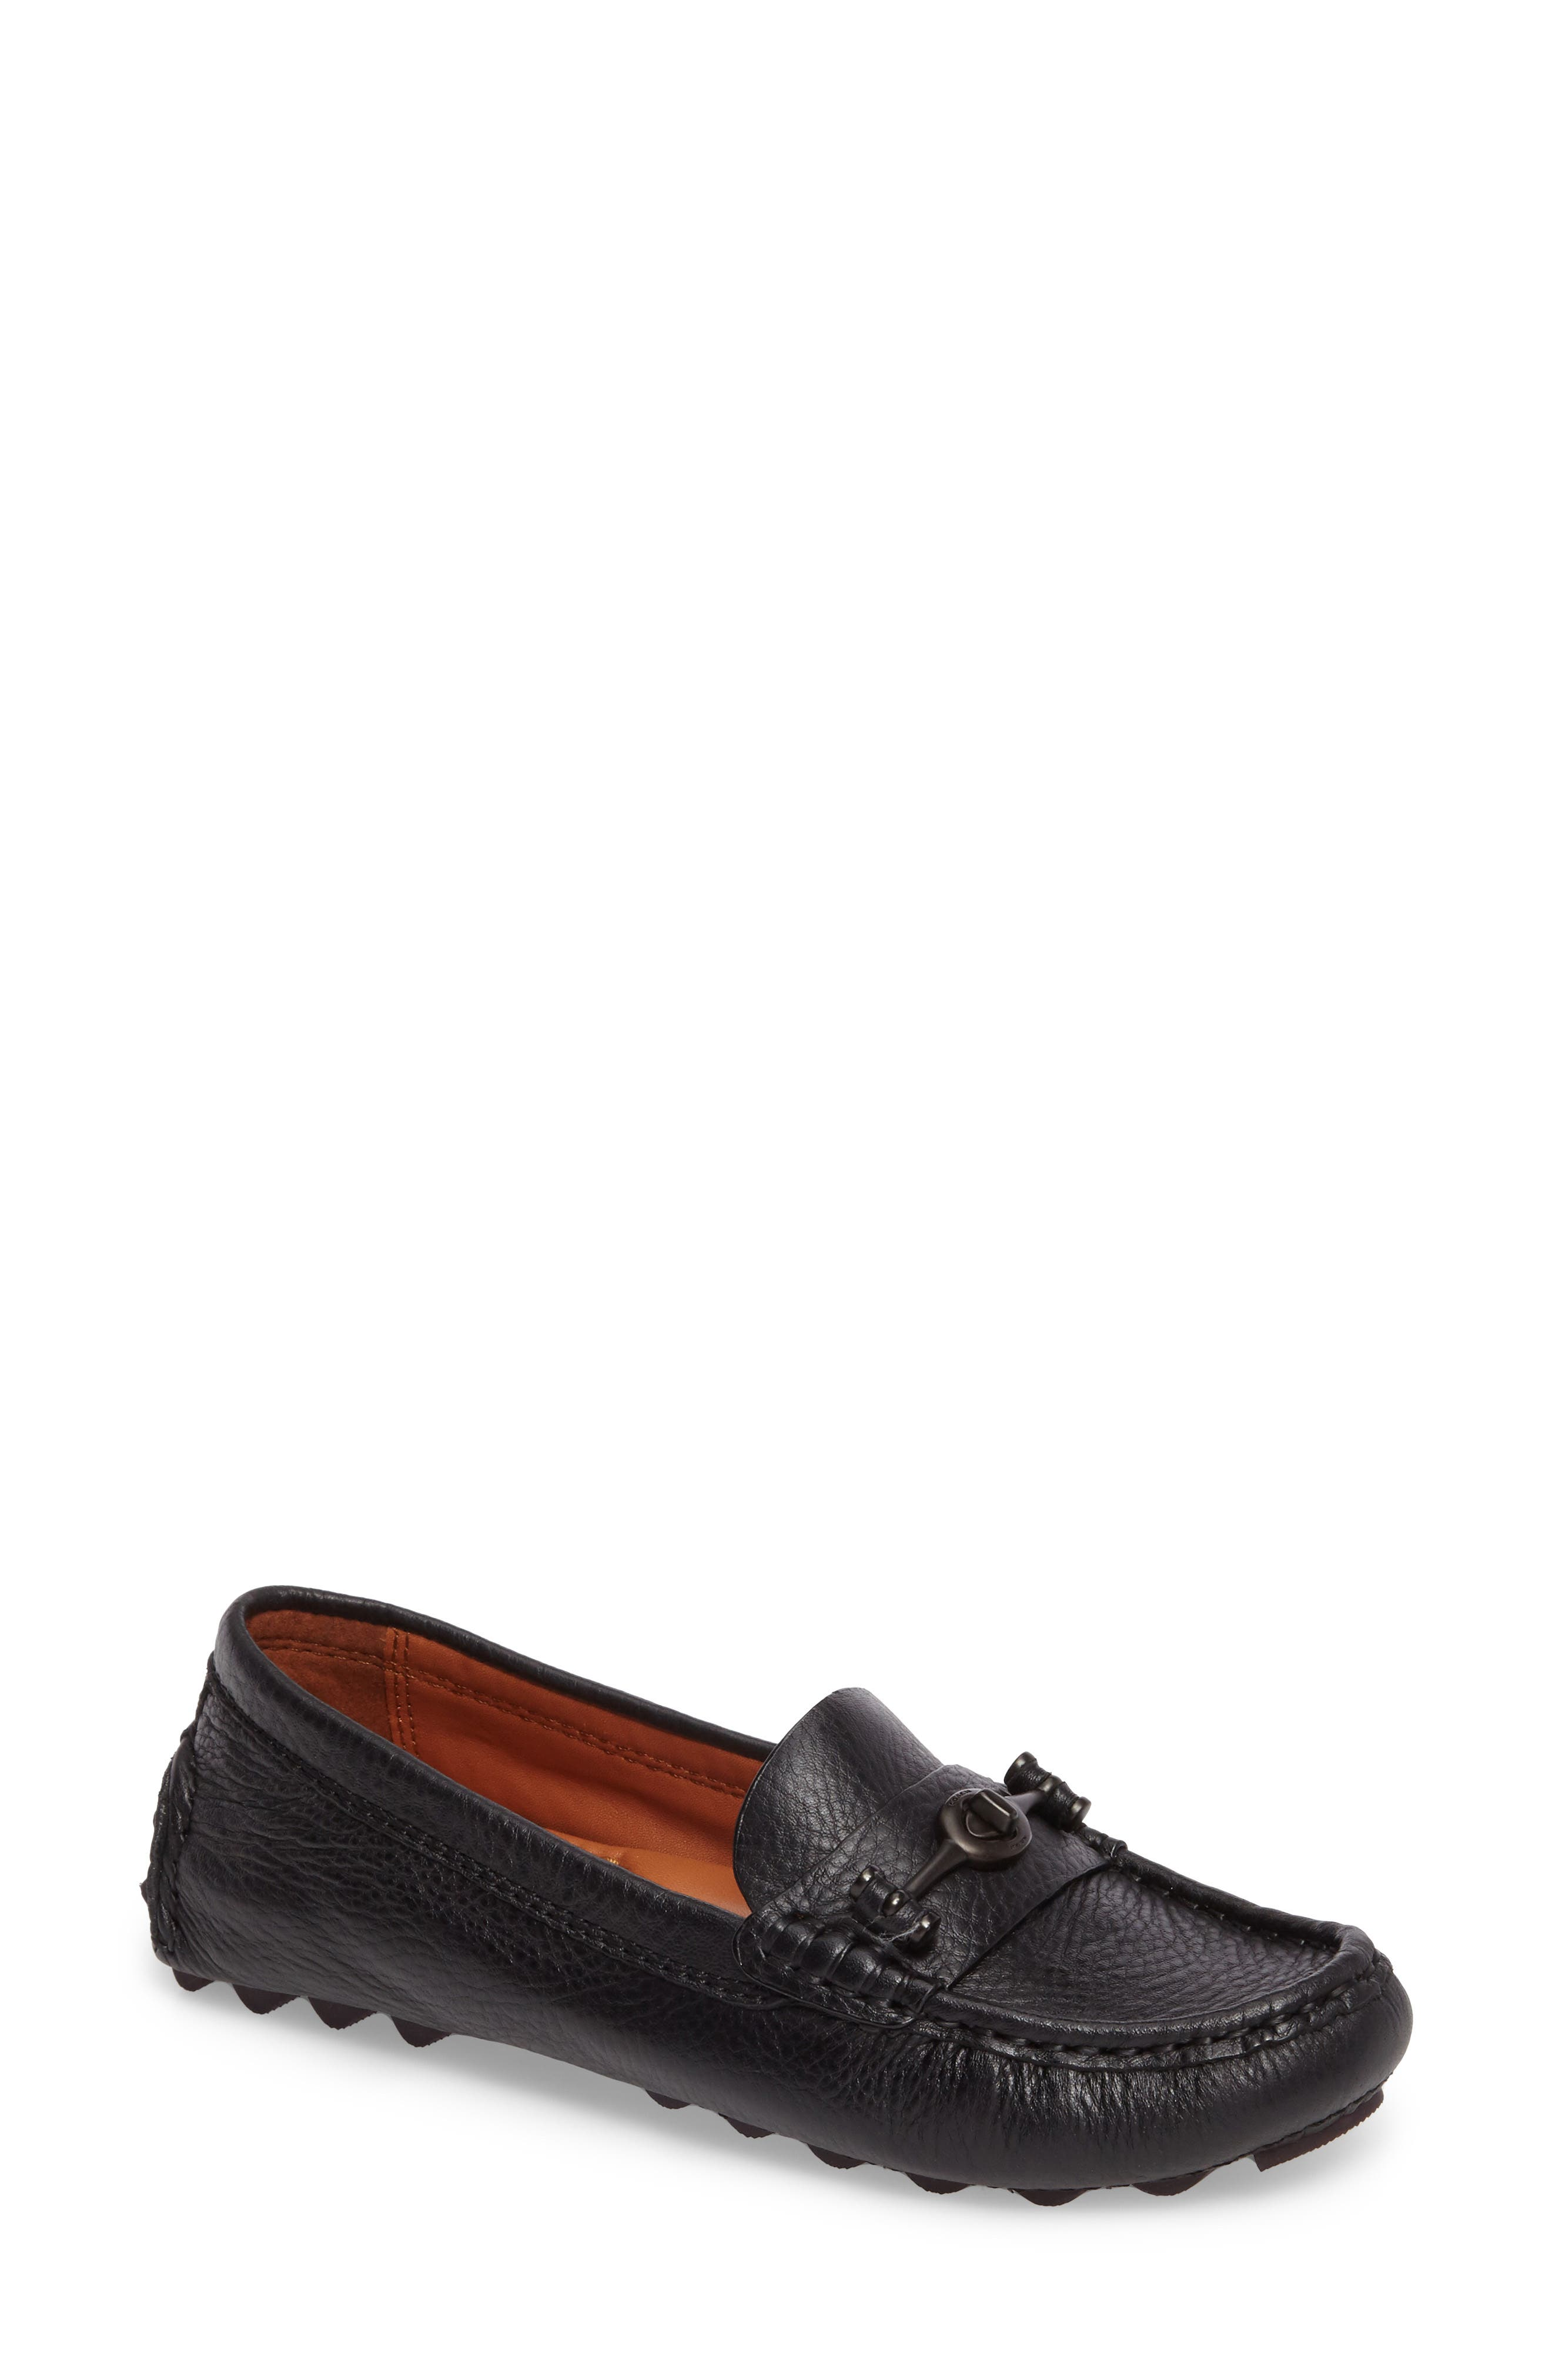 Main Image - COACH Crosby Driver Loafer (Women)